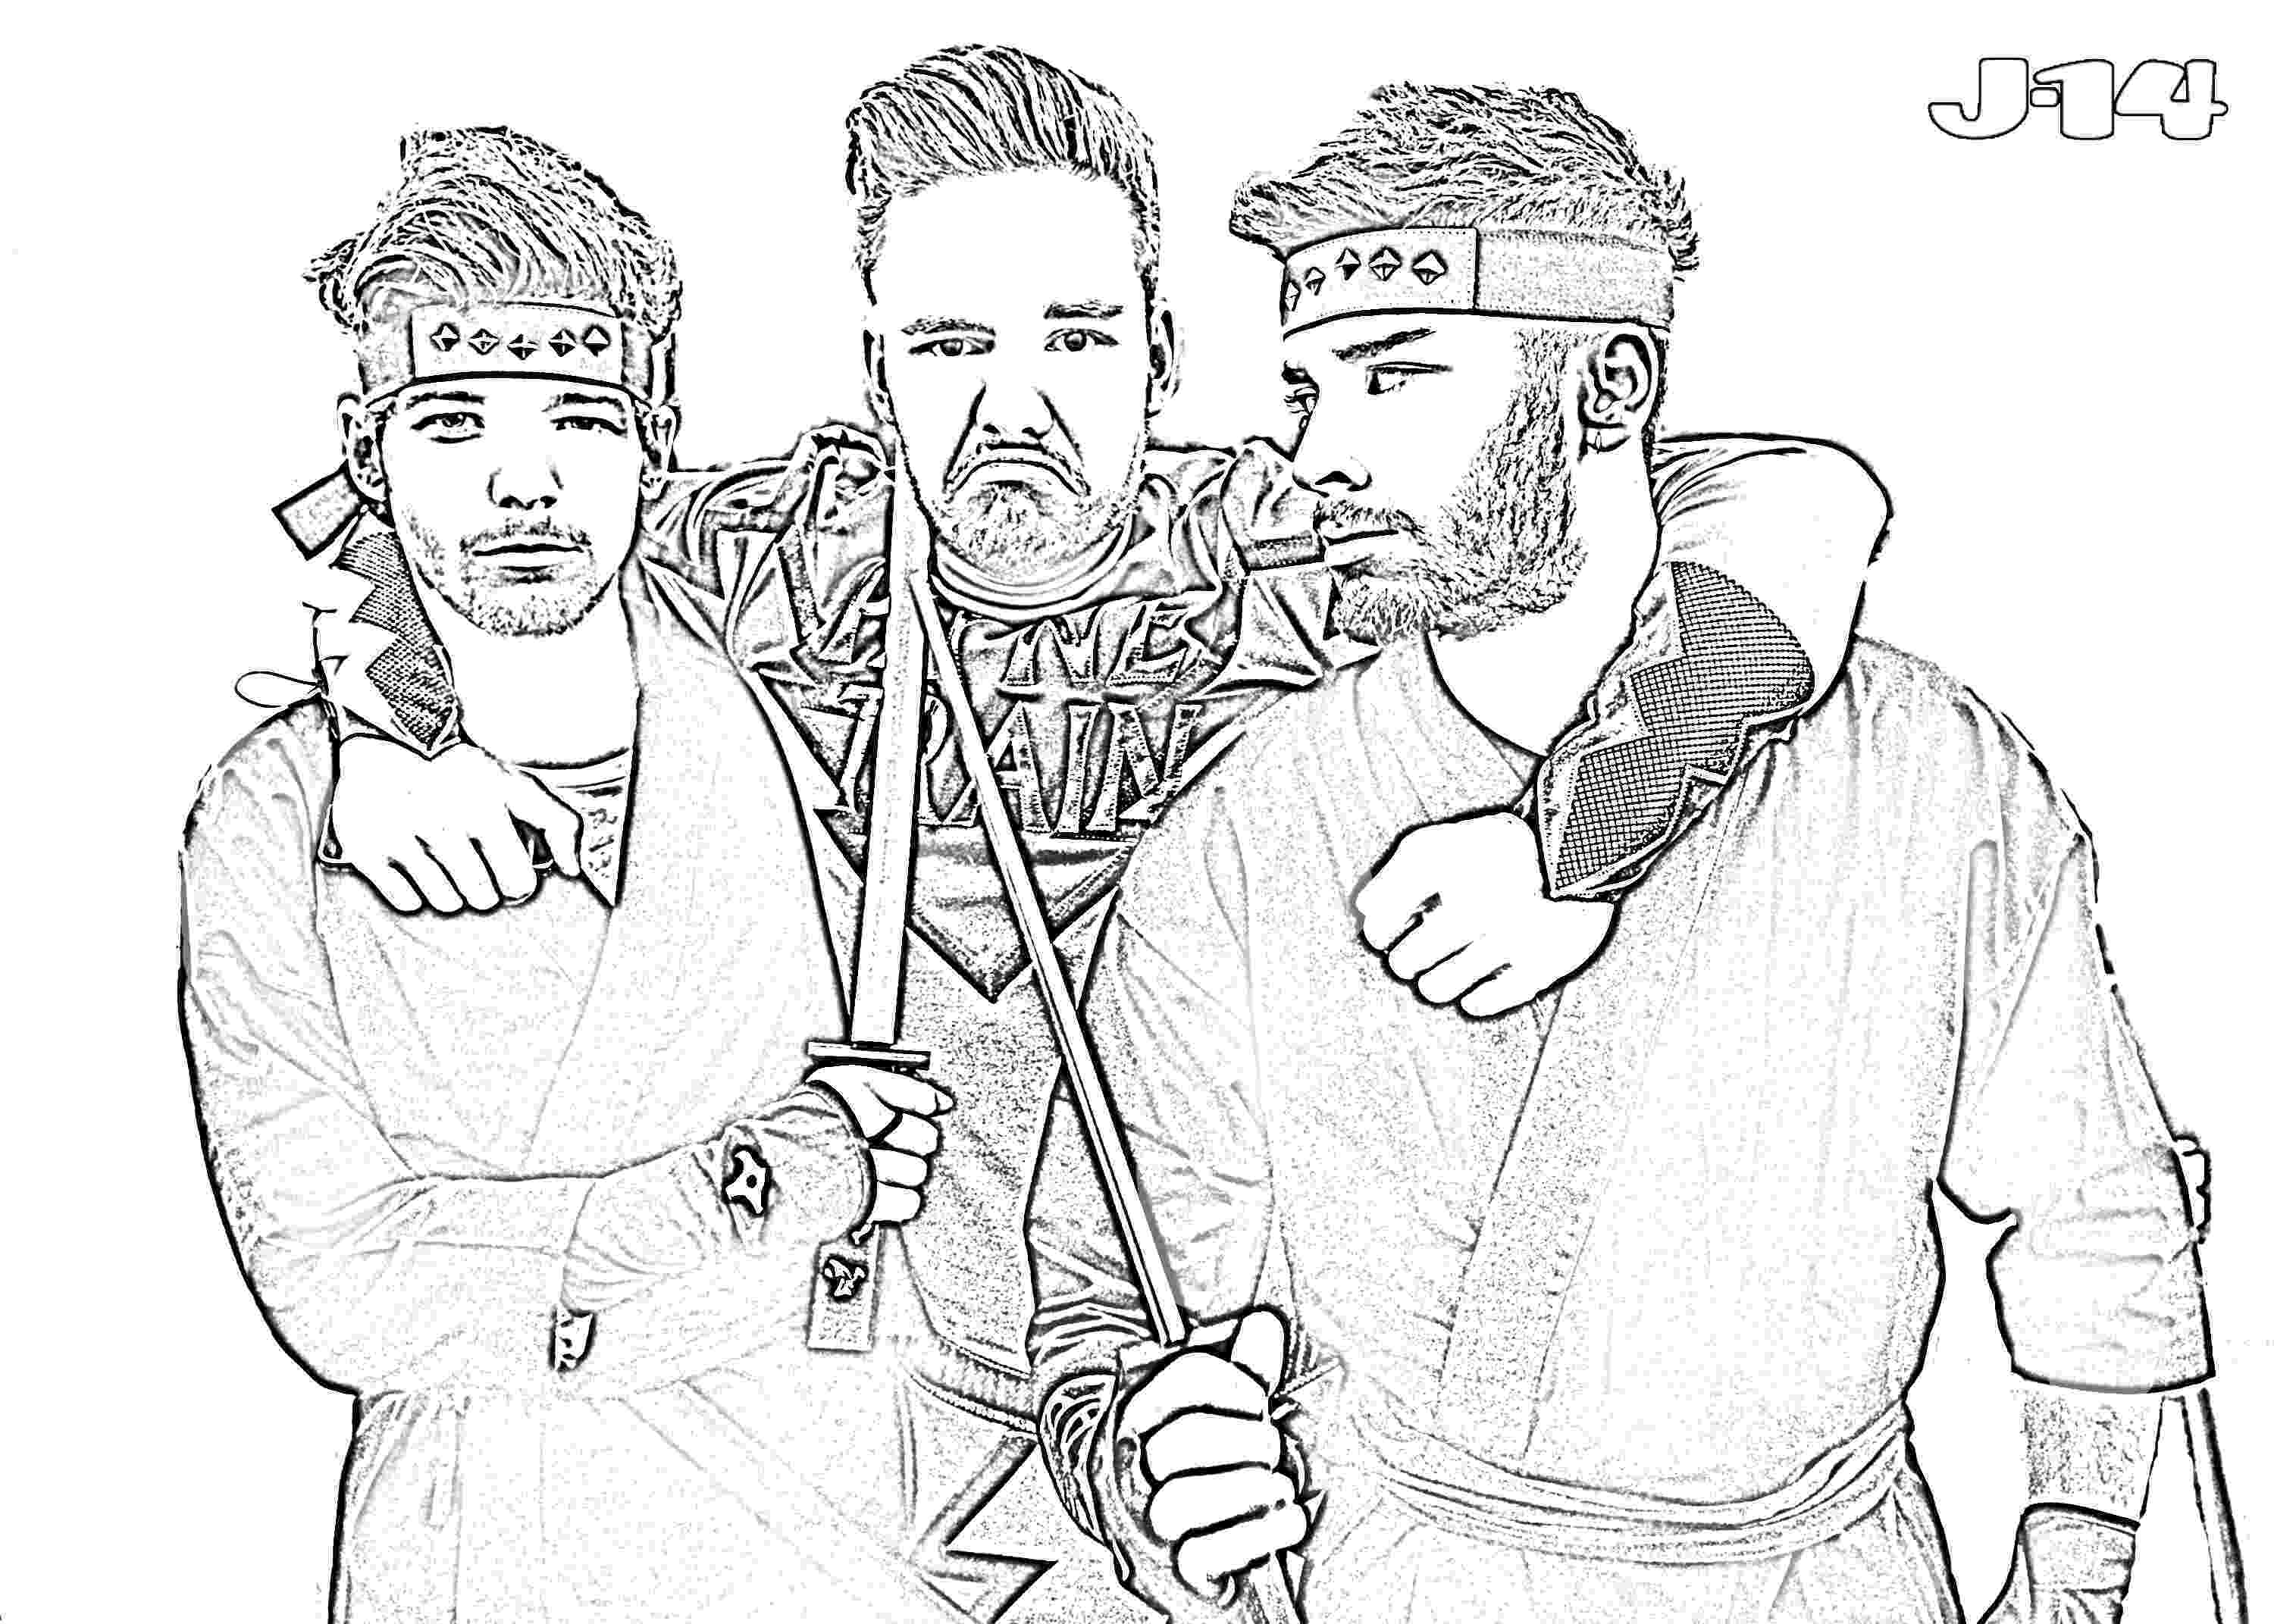 colouring pages for one direction 為孩子們的著色頁 one direction coloring pages printable pages direction for colouring one pages